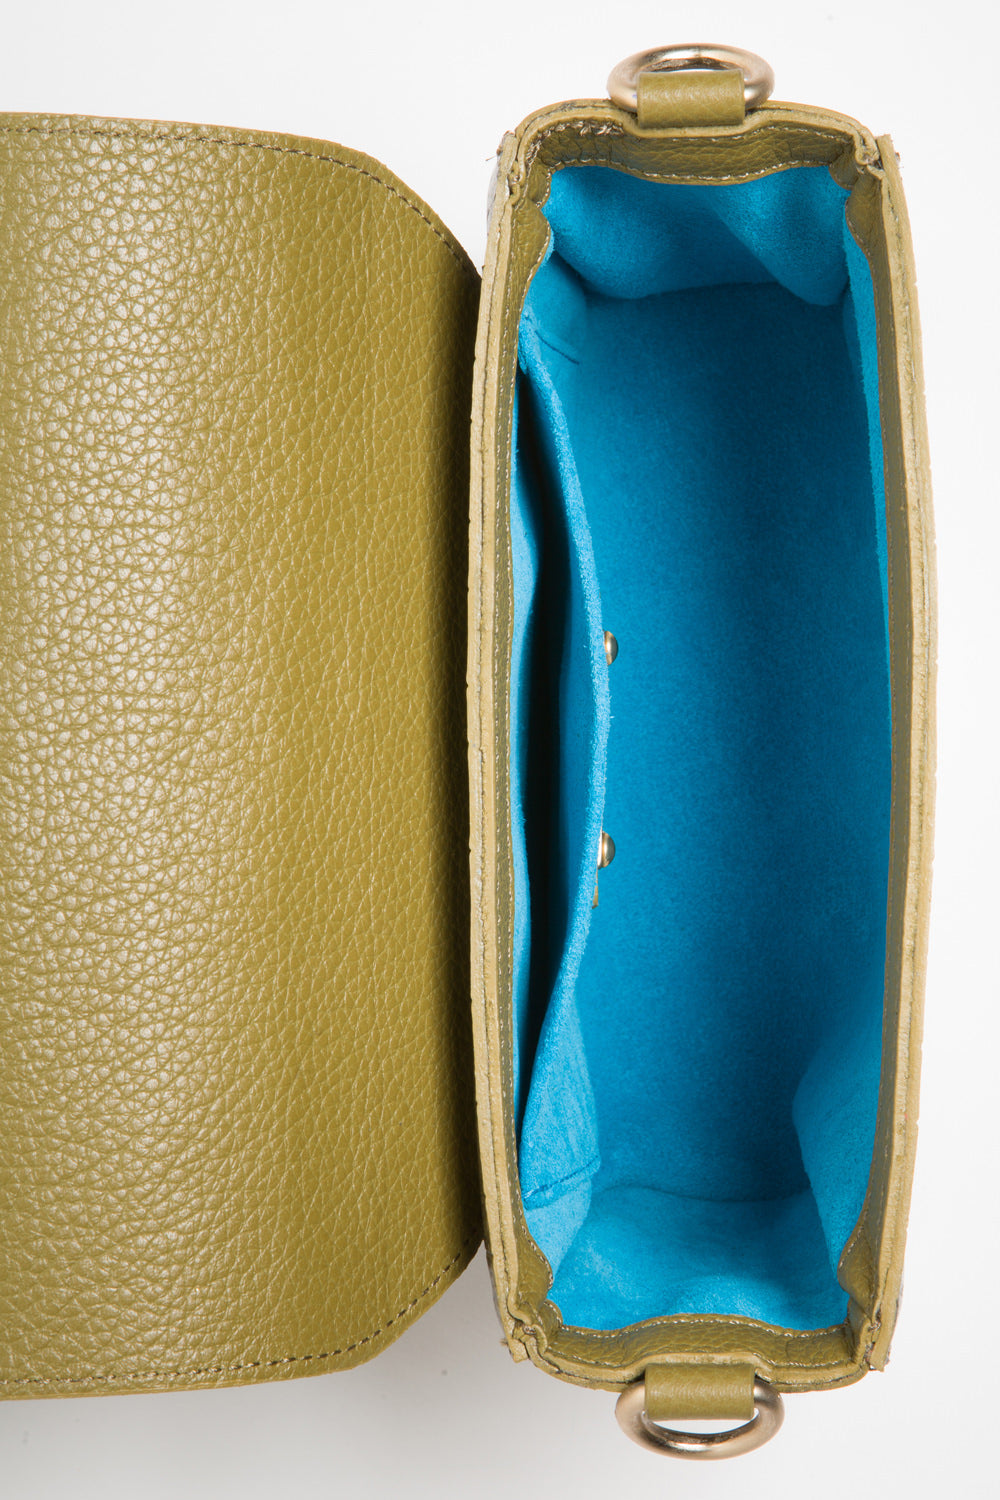 'Gema' Small Shoulder Bag in Green Moss, Croc-Emboss Leather | Mel Boteri | Turquoise Suede Lining View